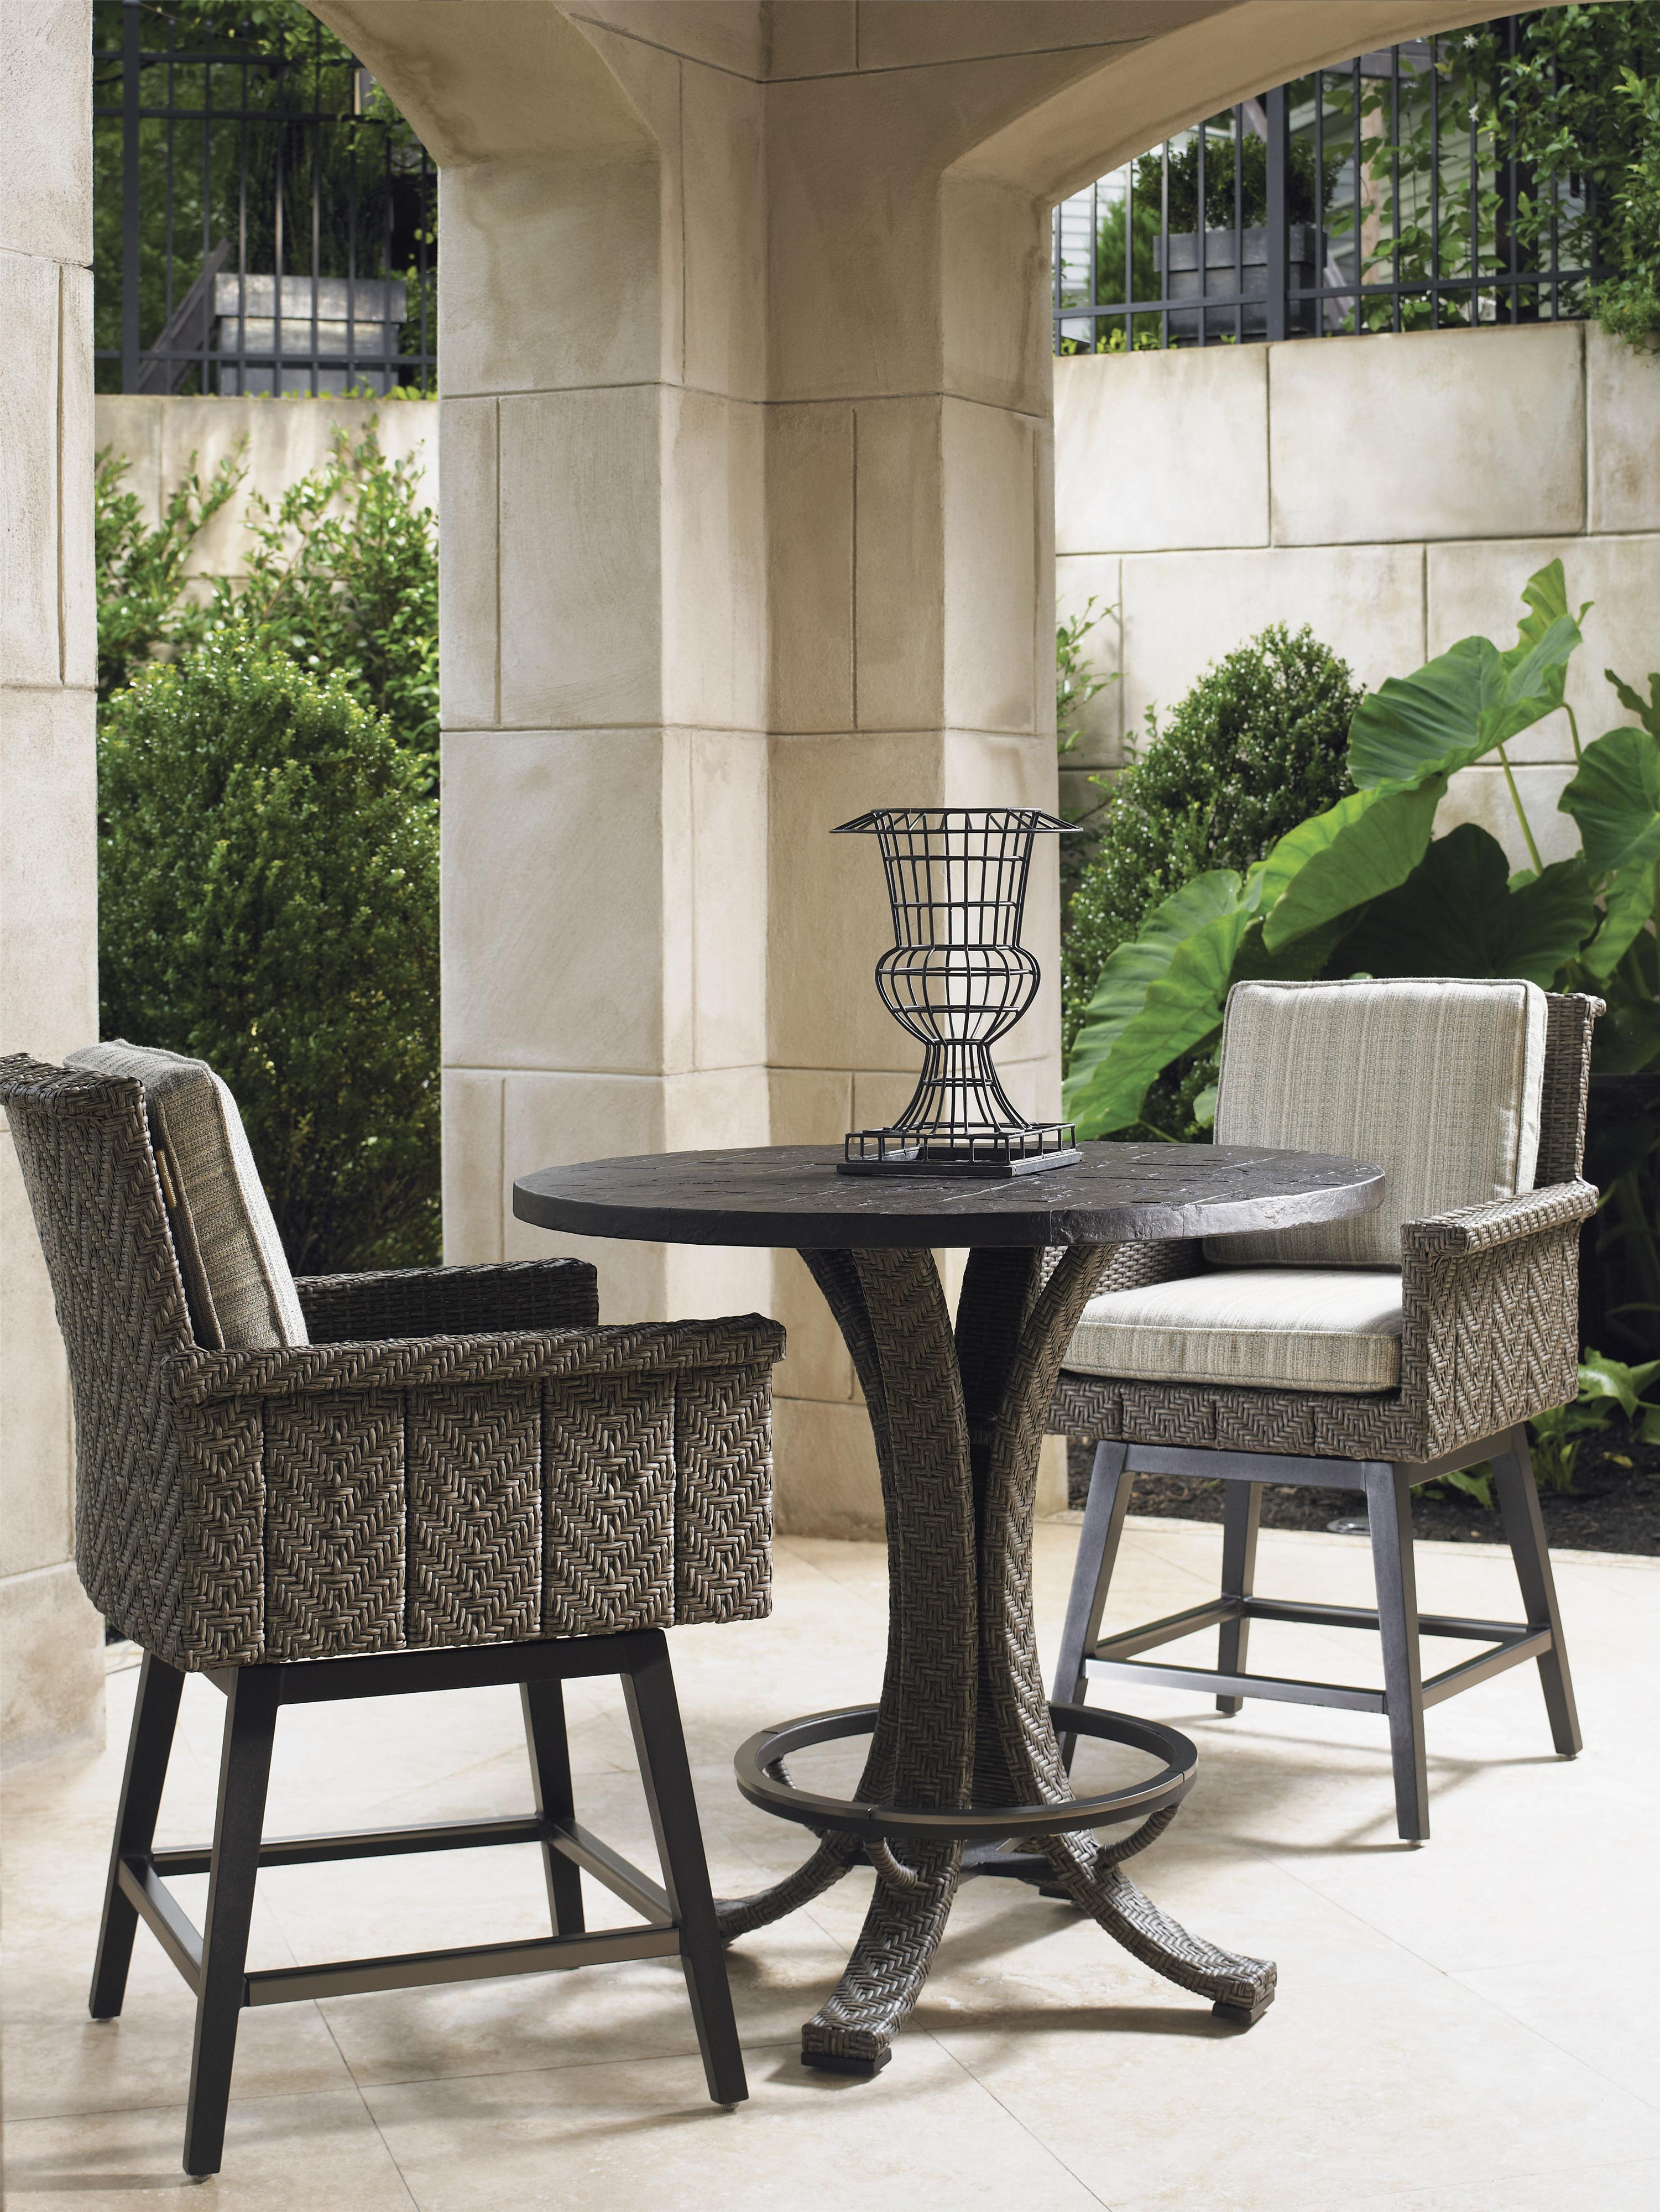 blue bistro chairs pedicure chair liners tommy bahama outdoor living olive low table